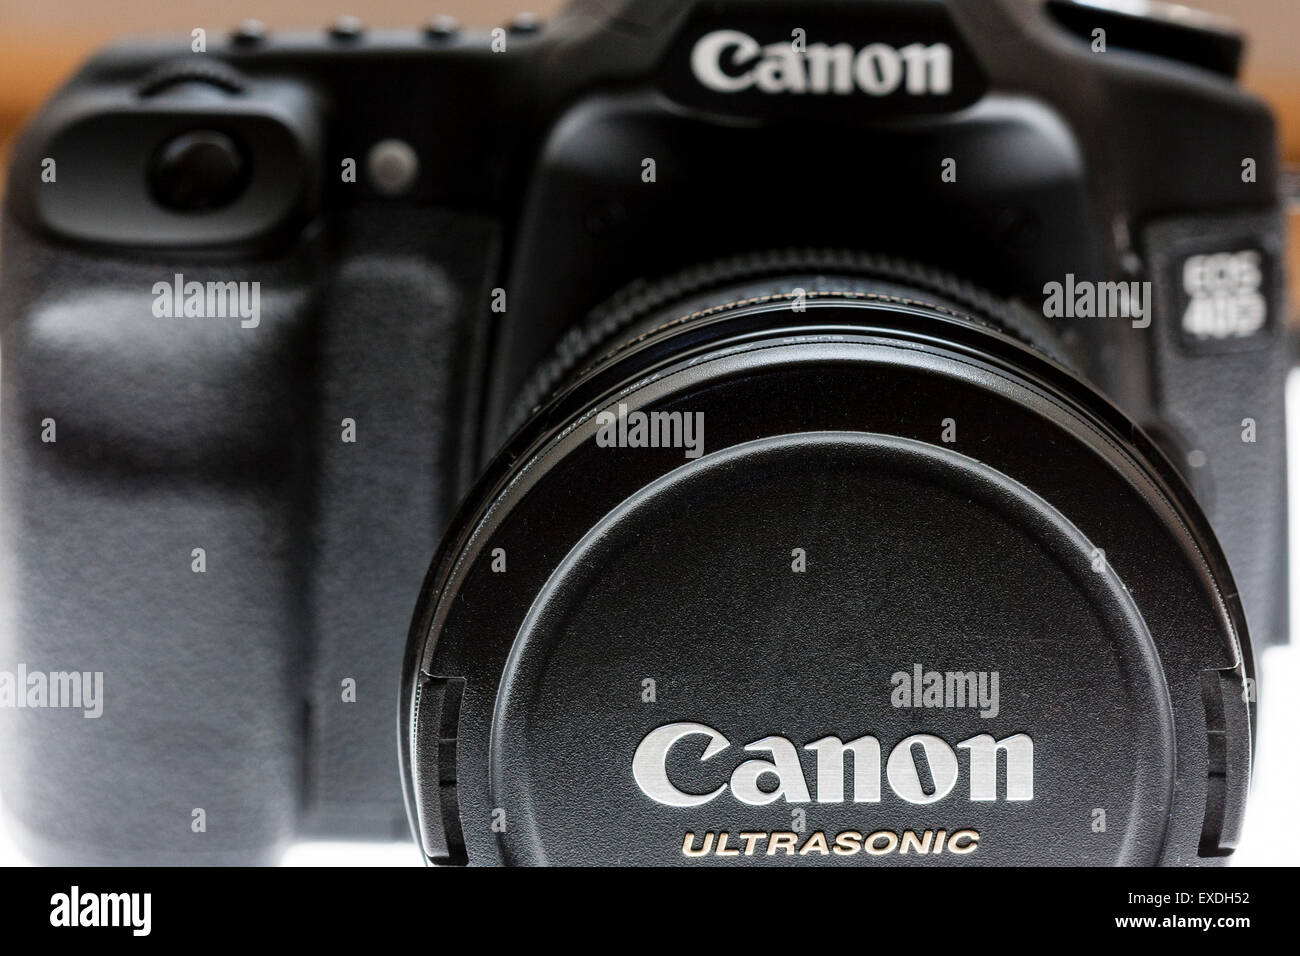 Back of Single lens reflex digital Canon Camera, EOS 40d, front view with 10-22 mm lens - Stock Image